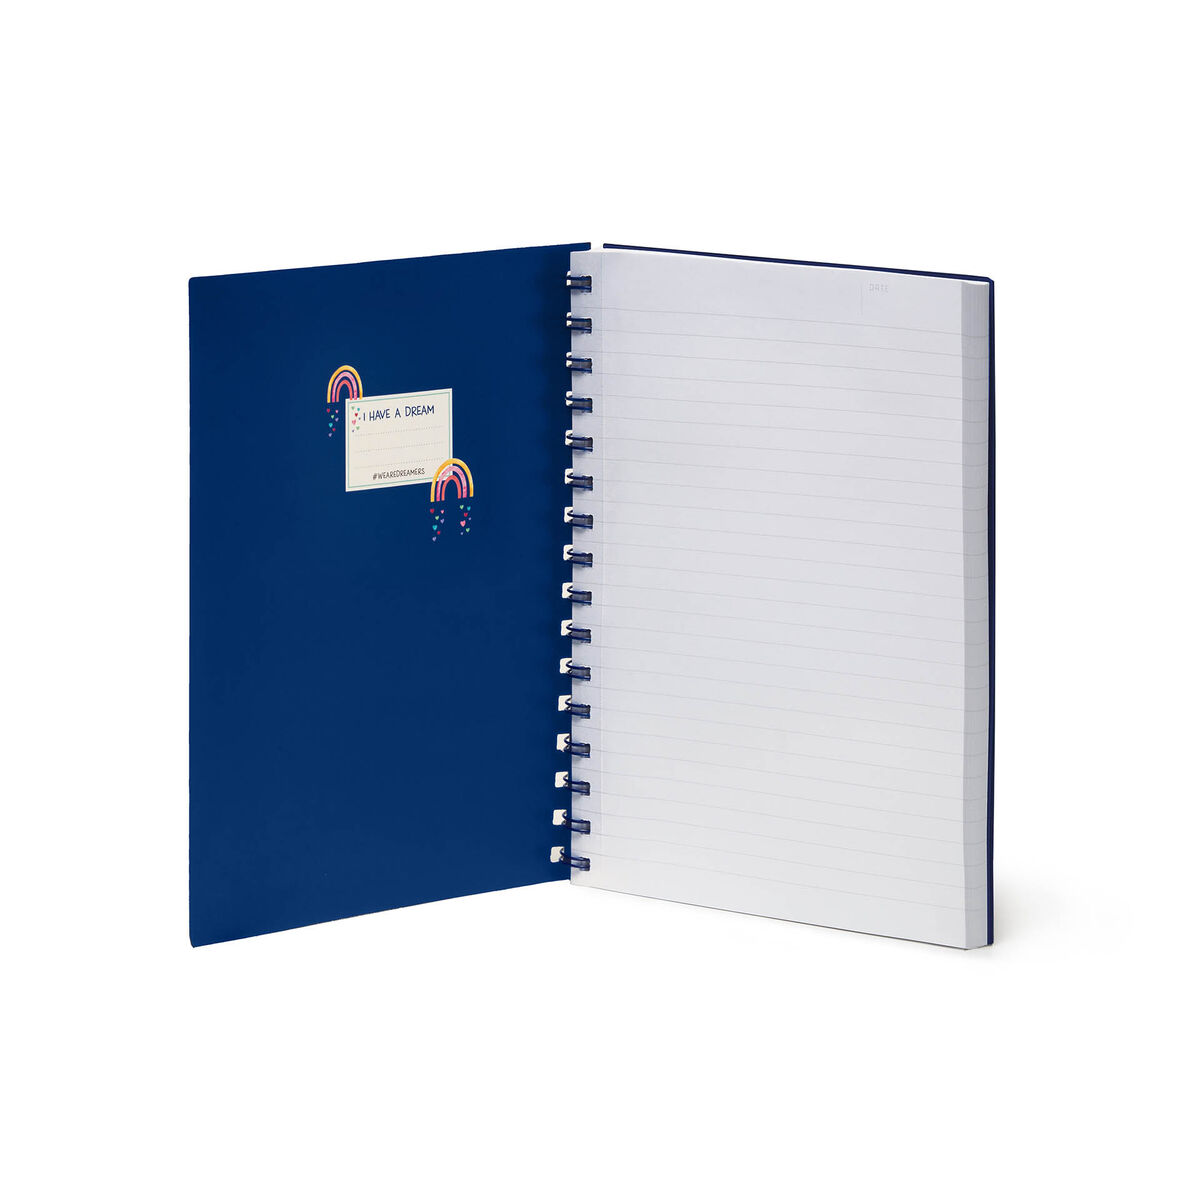 Lined Spiral Notebook - A5 Sheet - Large, , zoo